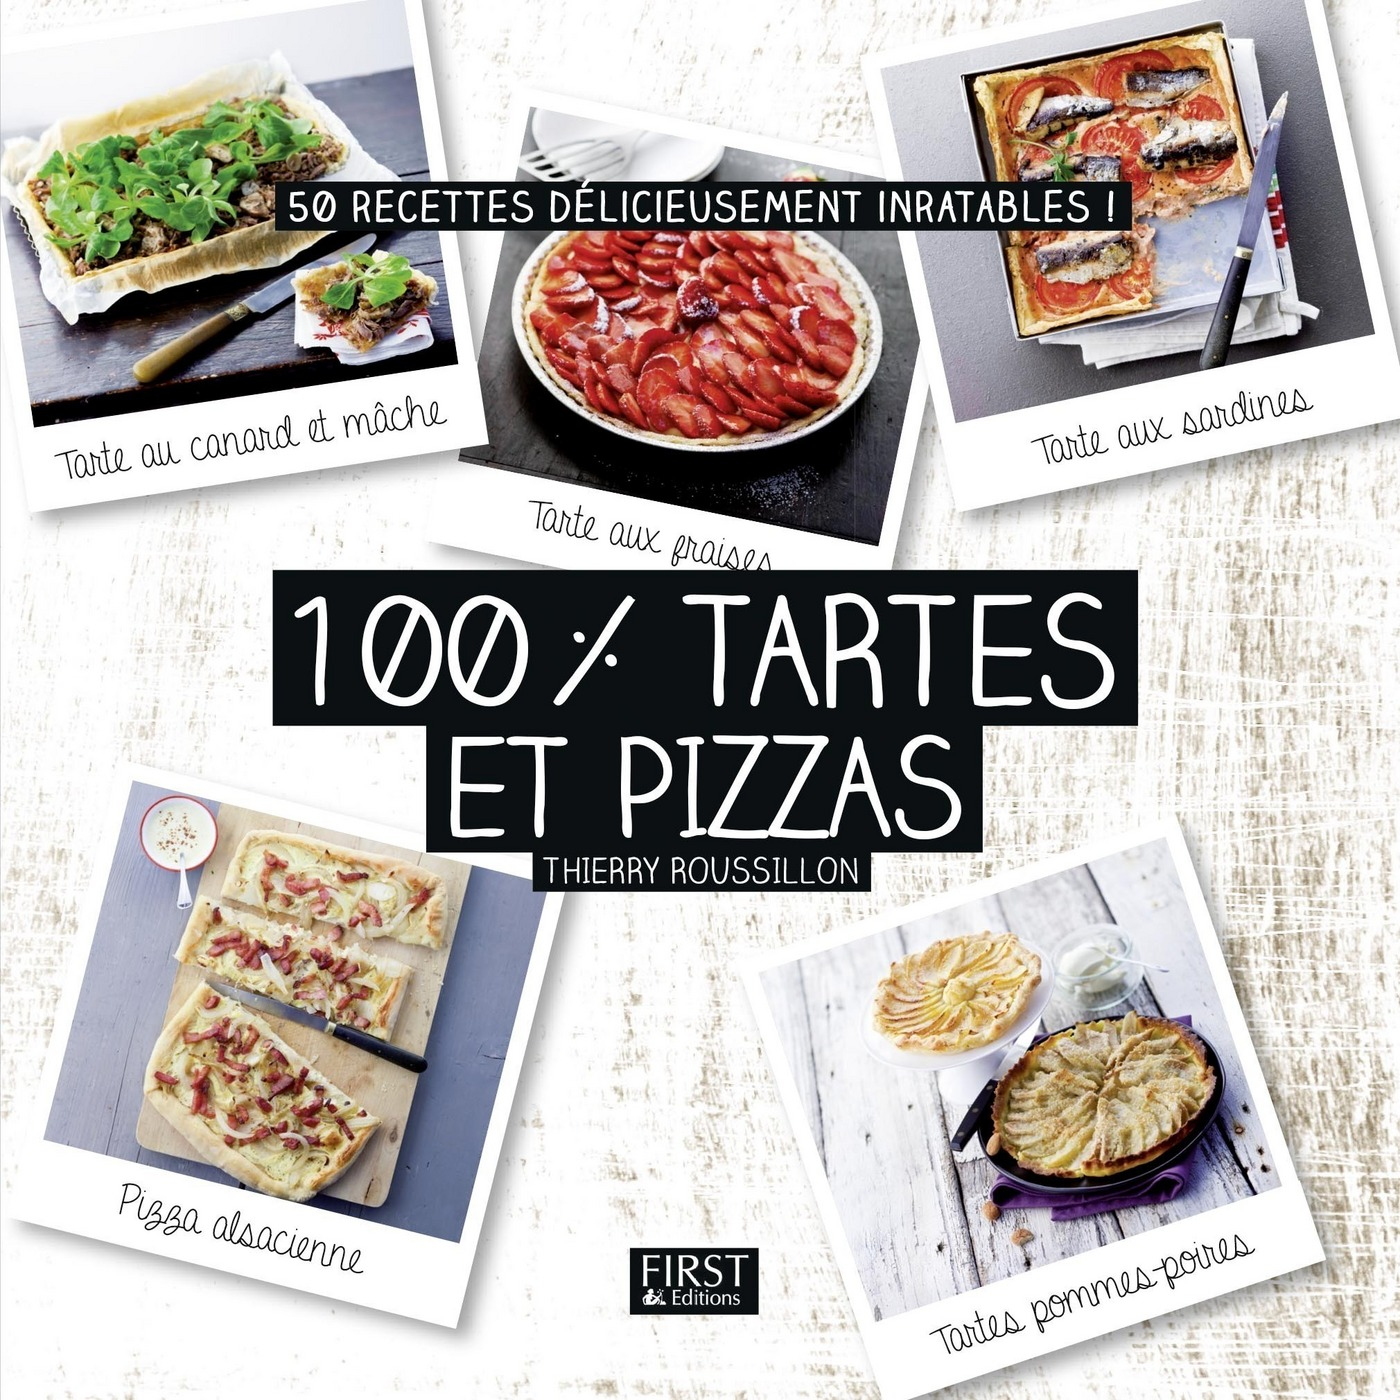 100 % tartes et pizzas (ebook)